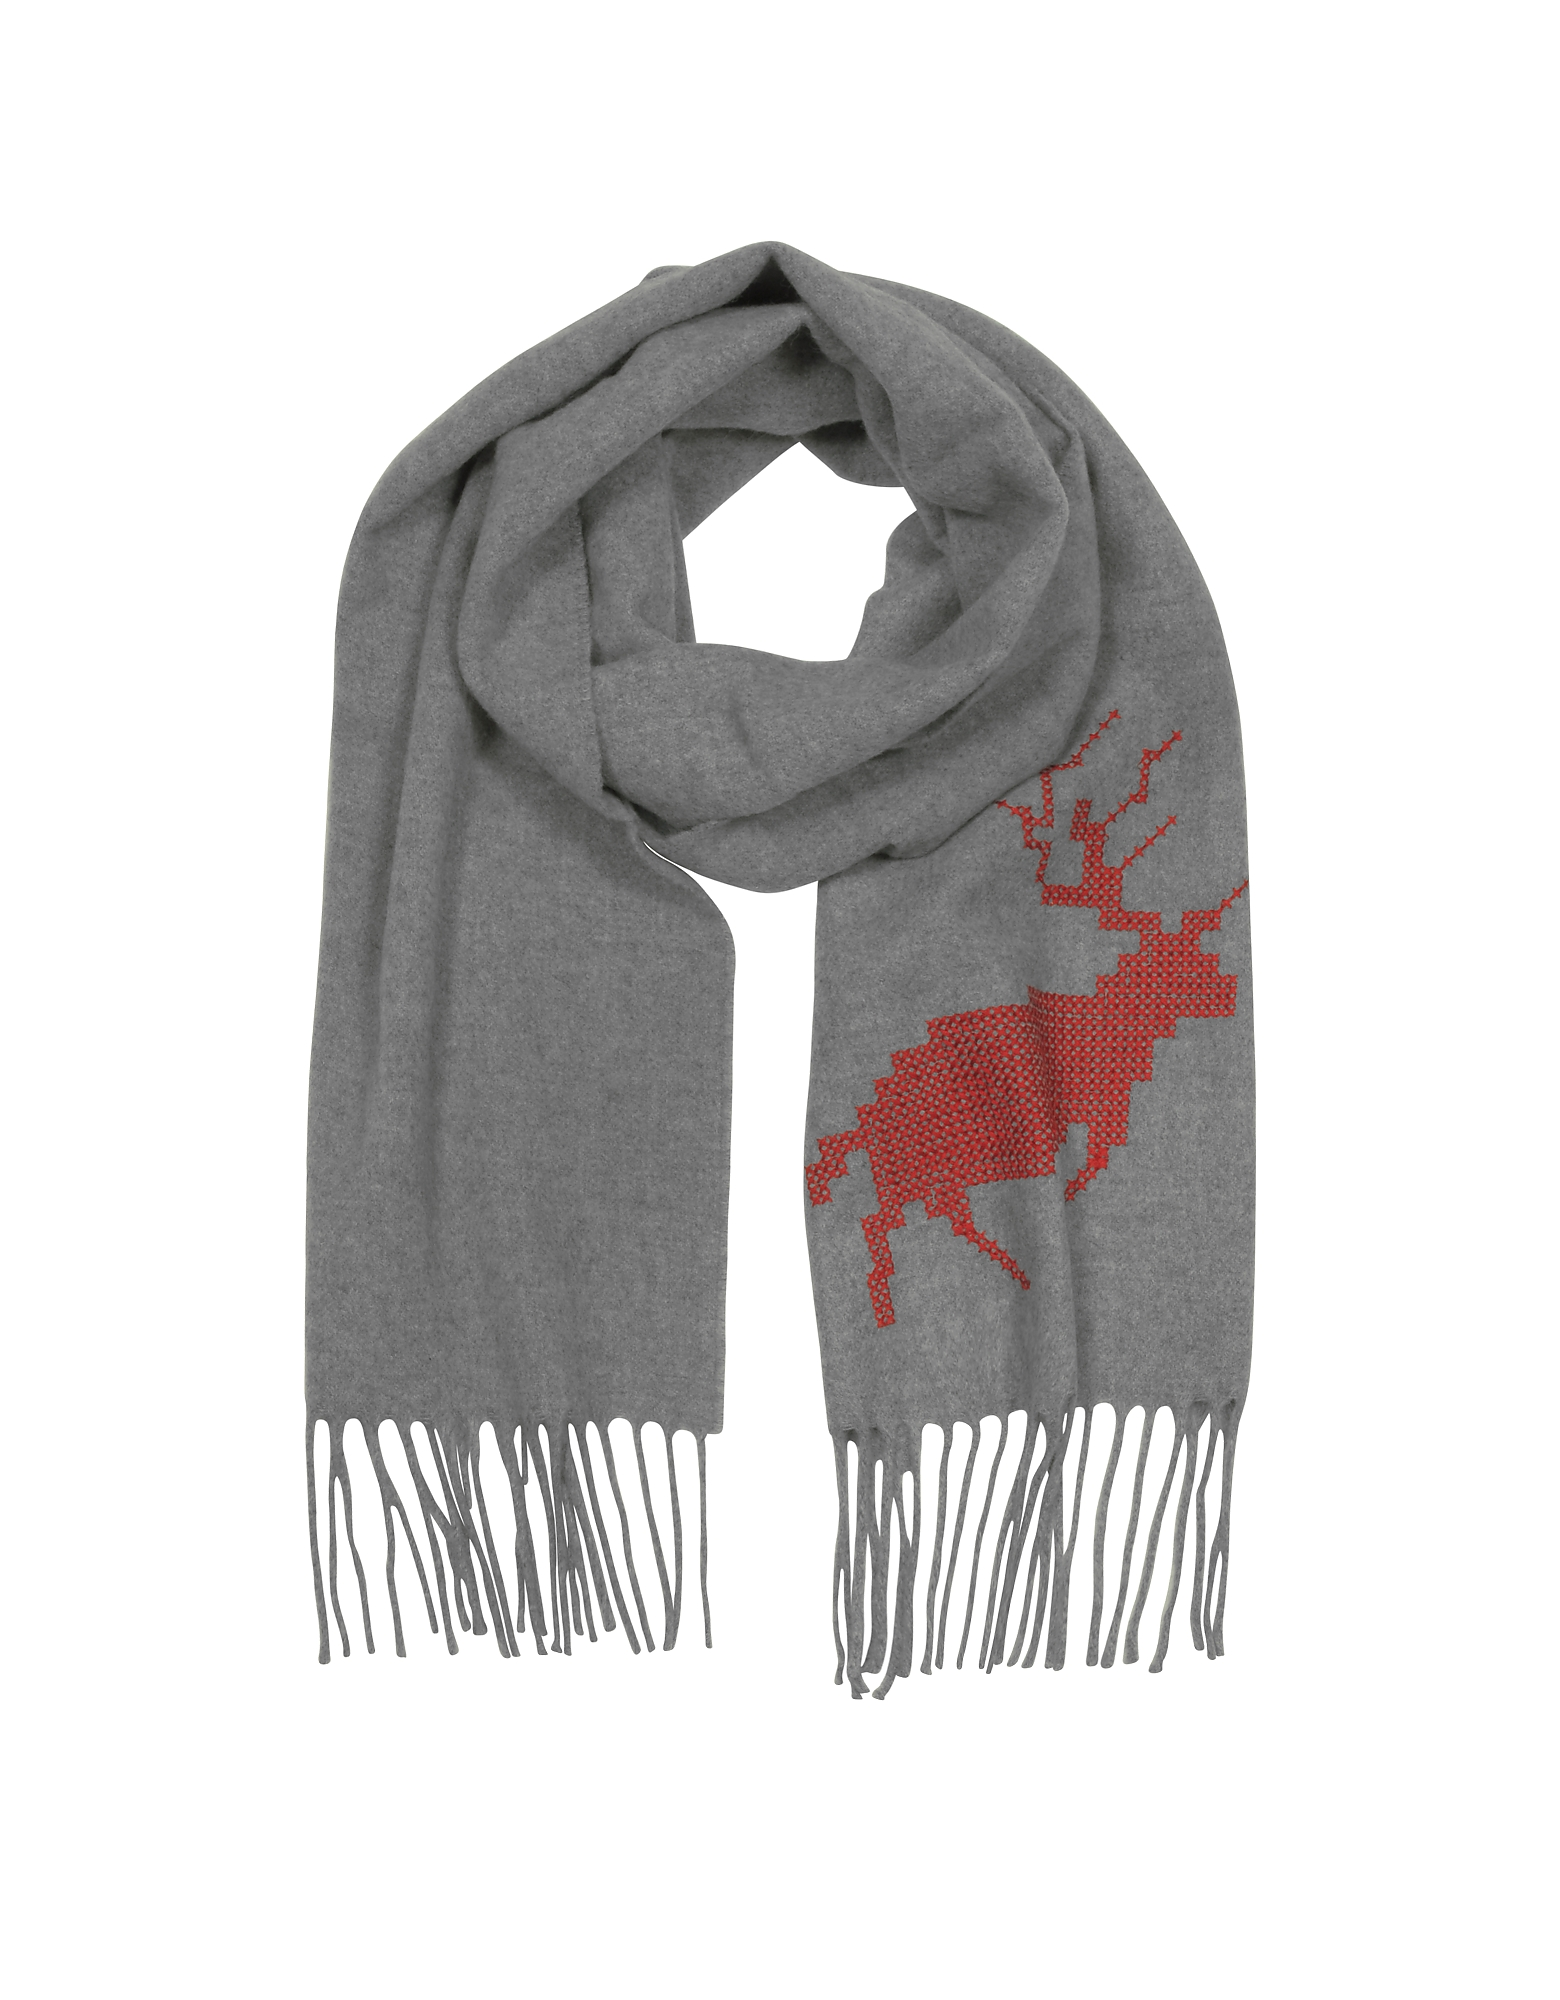 Canada Hiking Gray Wool and Cashmere Men's Long Scarf w/Fringes от Forzieri.com INT